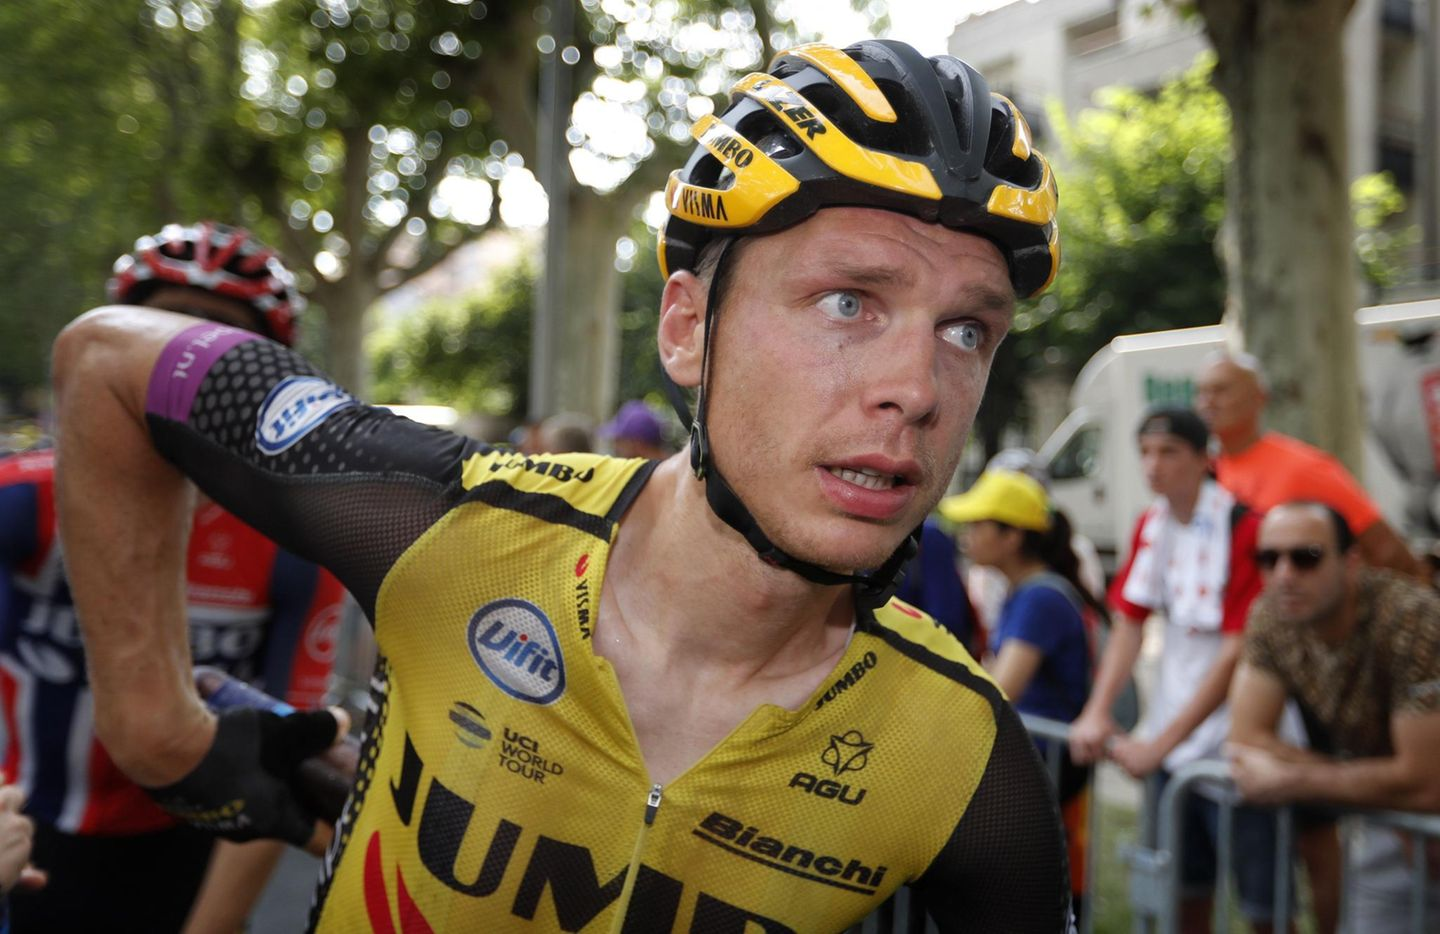 Tour de France Tony Martin nach der 17. Etappe in Gap